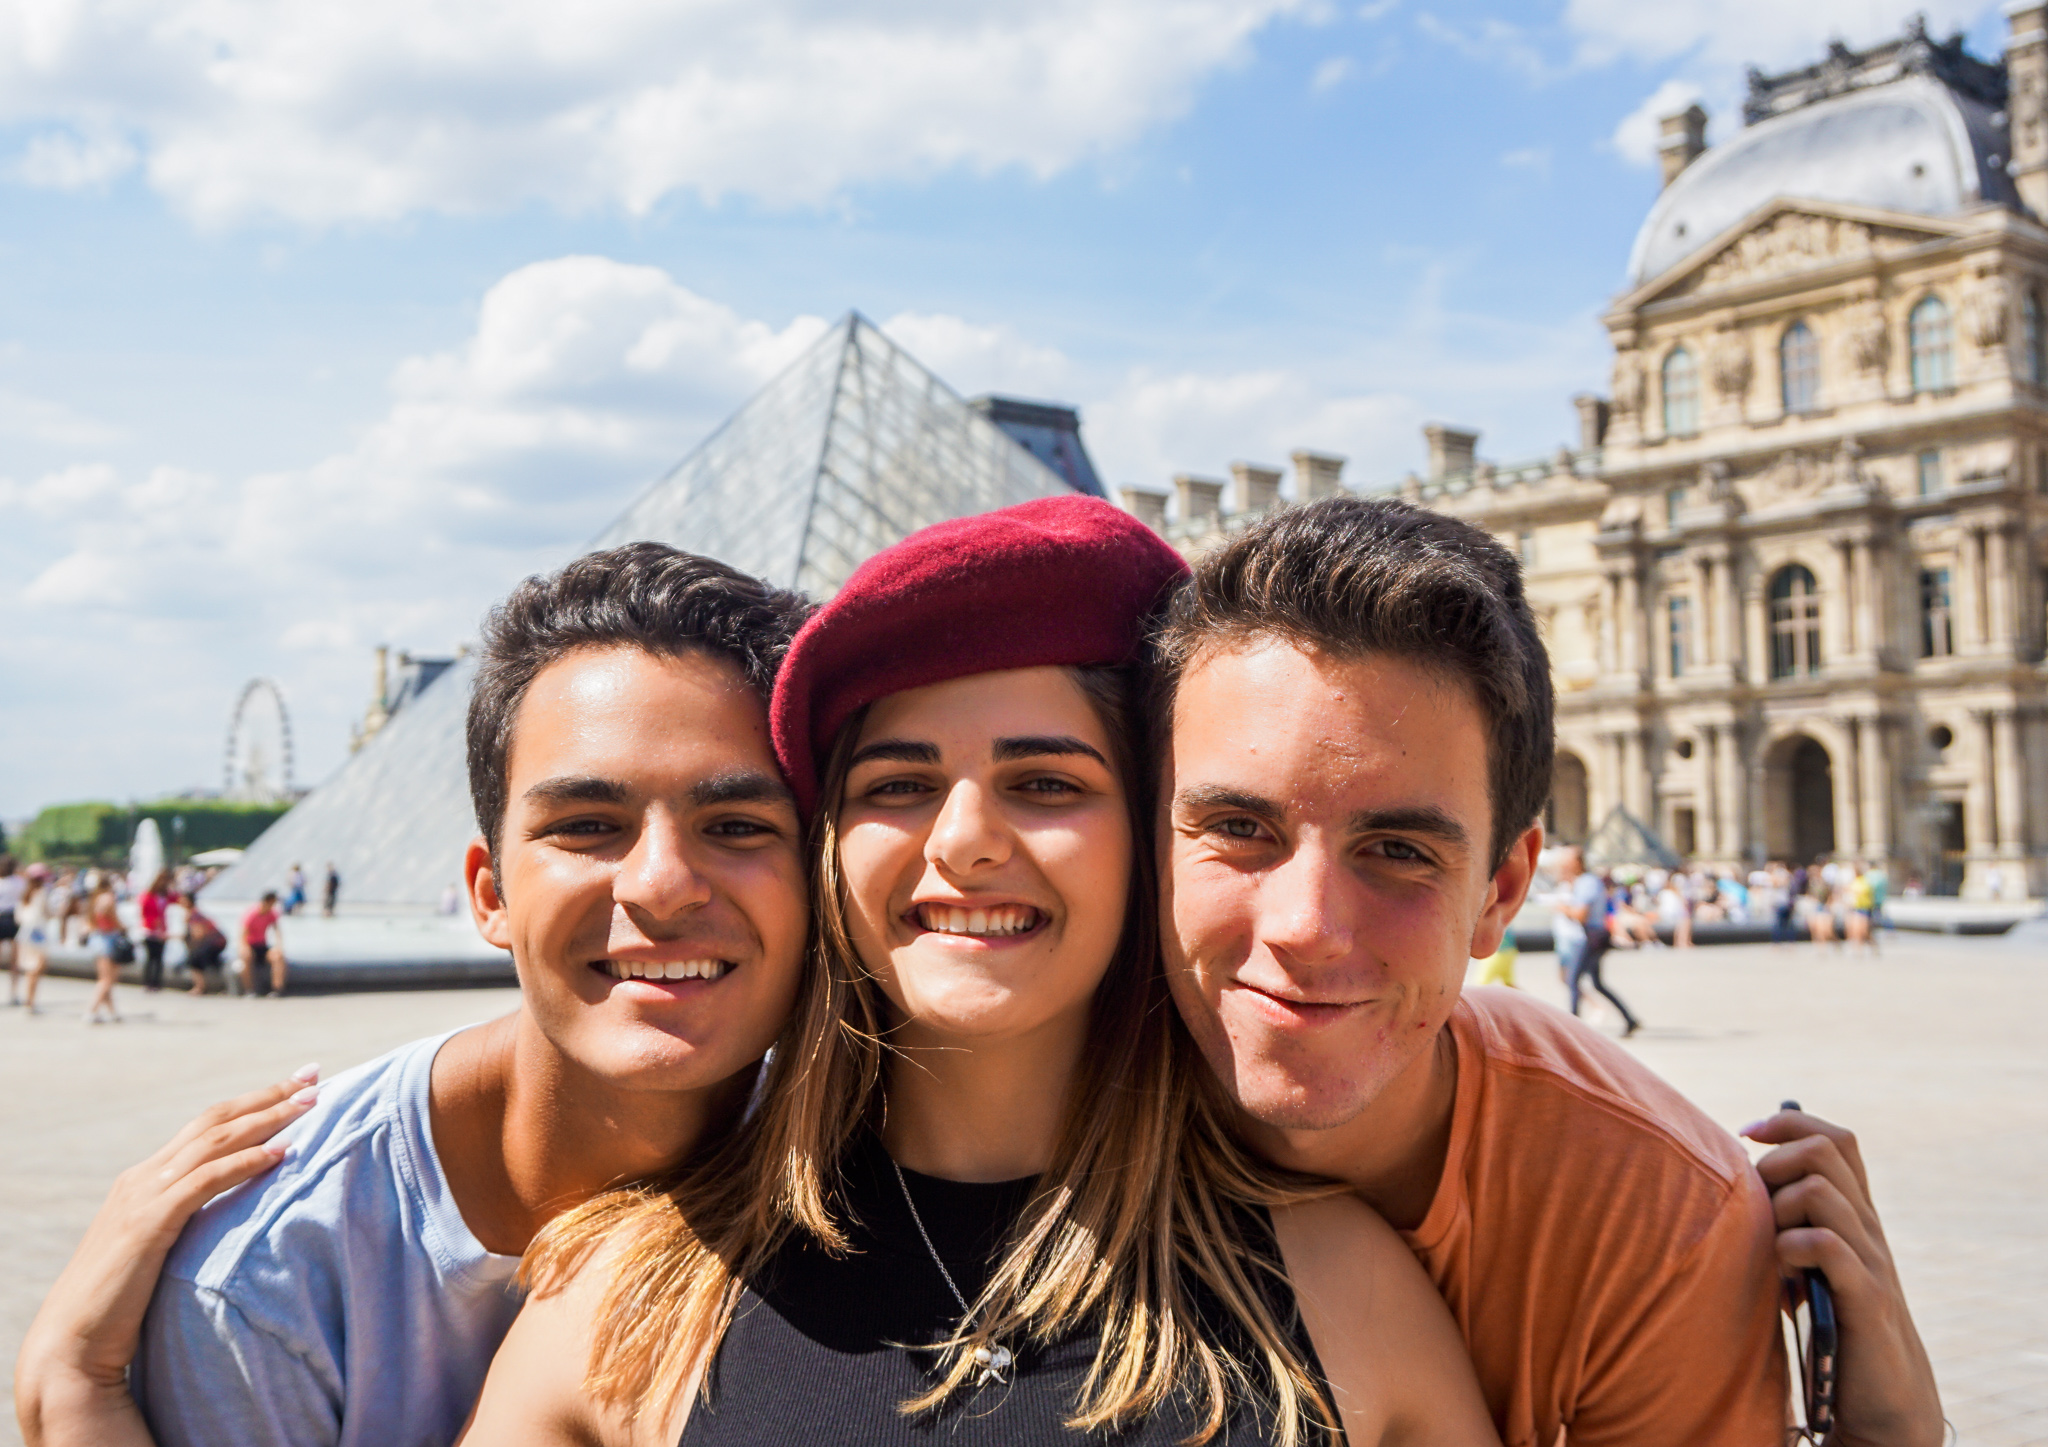 Summer Program - Adventure/Trips | Travel For Teens: Europe for Older Teens - London, Paris, French Riviera and Barcelona